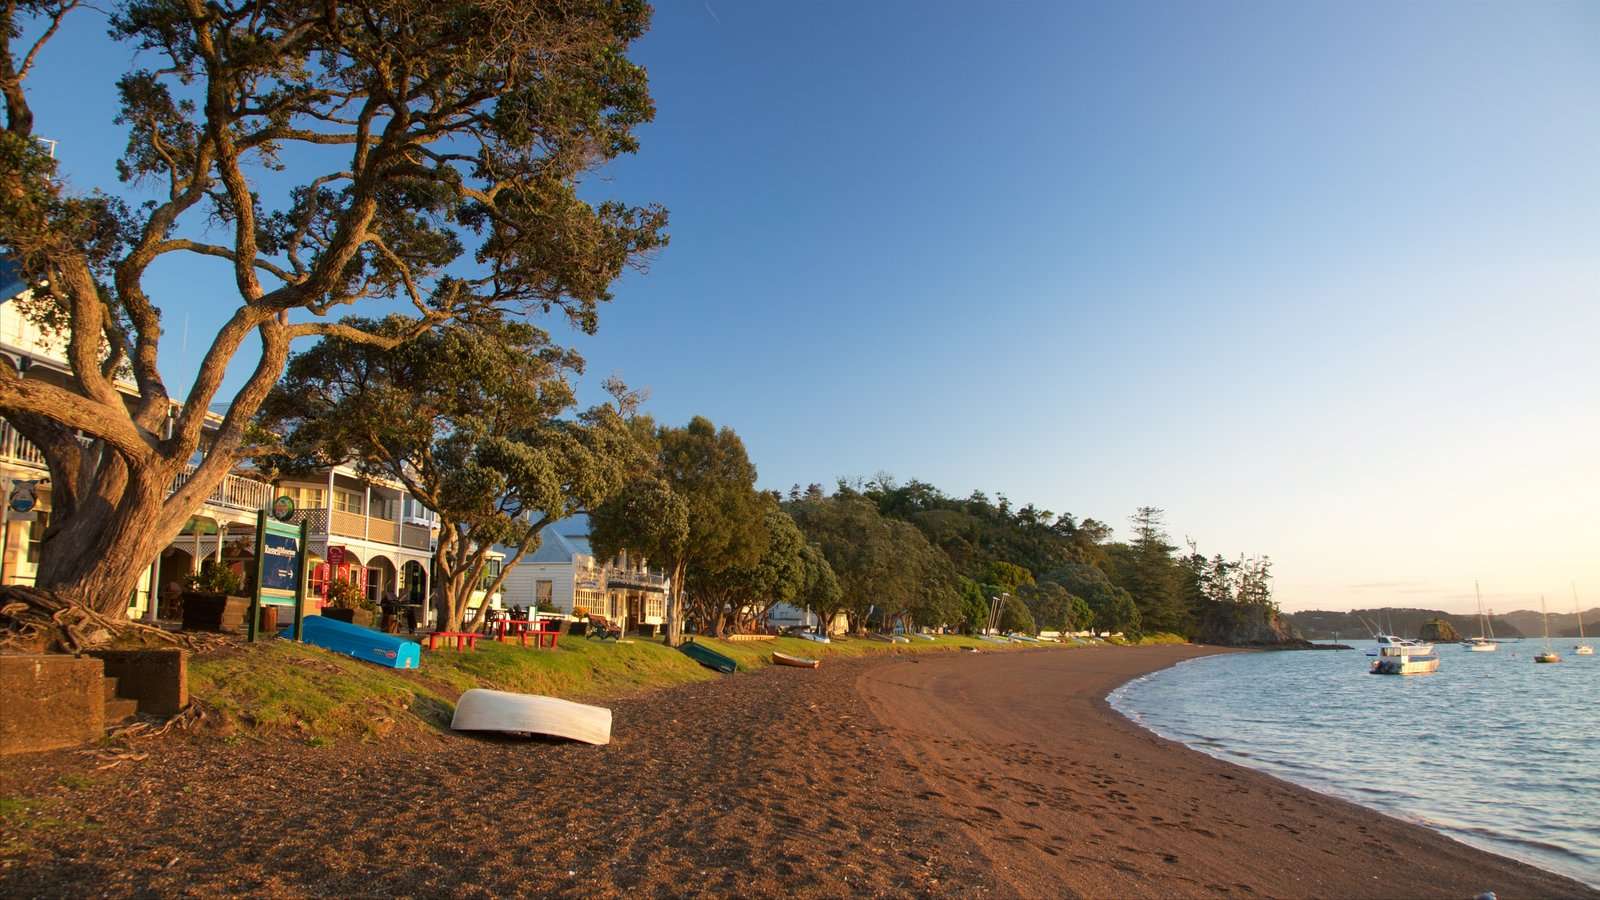 Russell Beach featuring a bay or harbor, a coastal town and a sandy beach